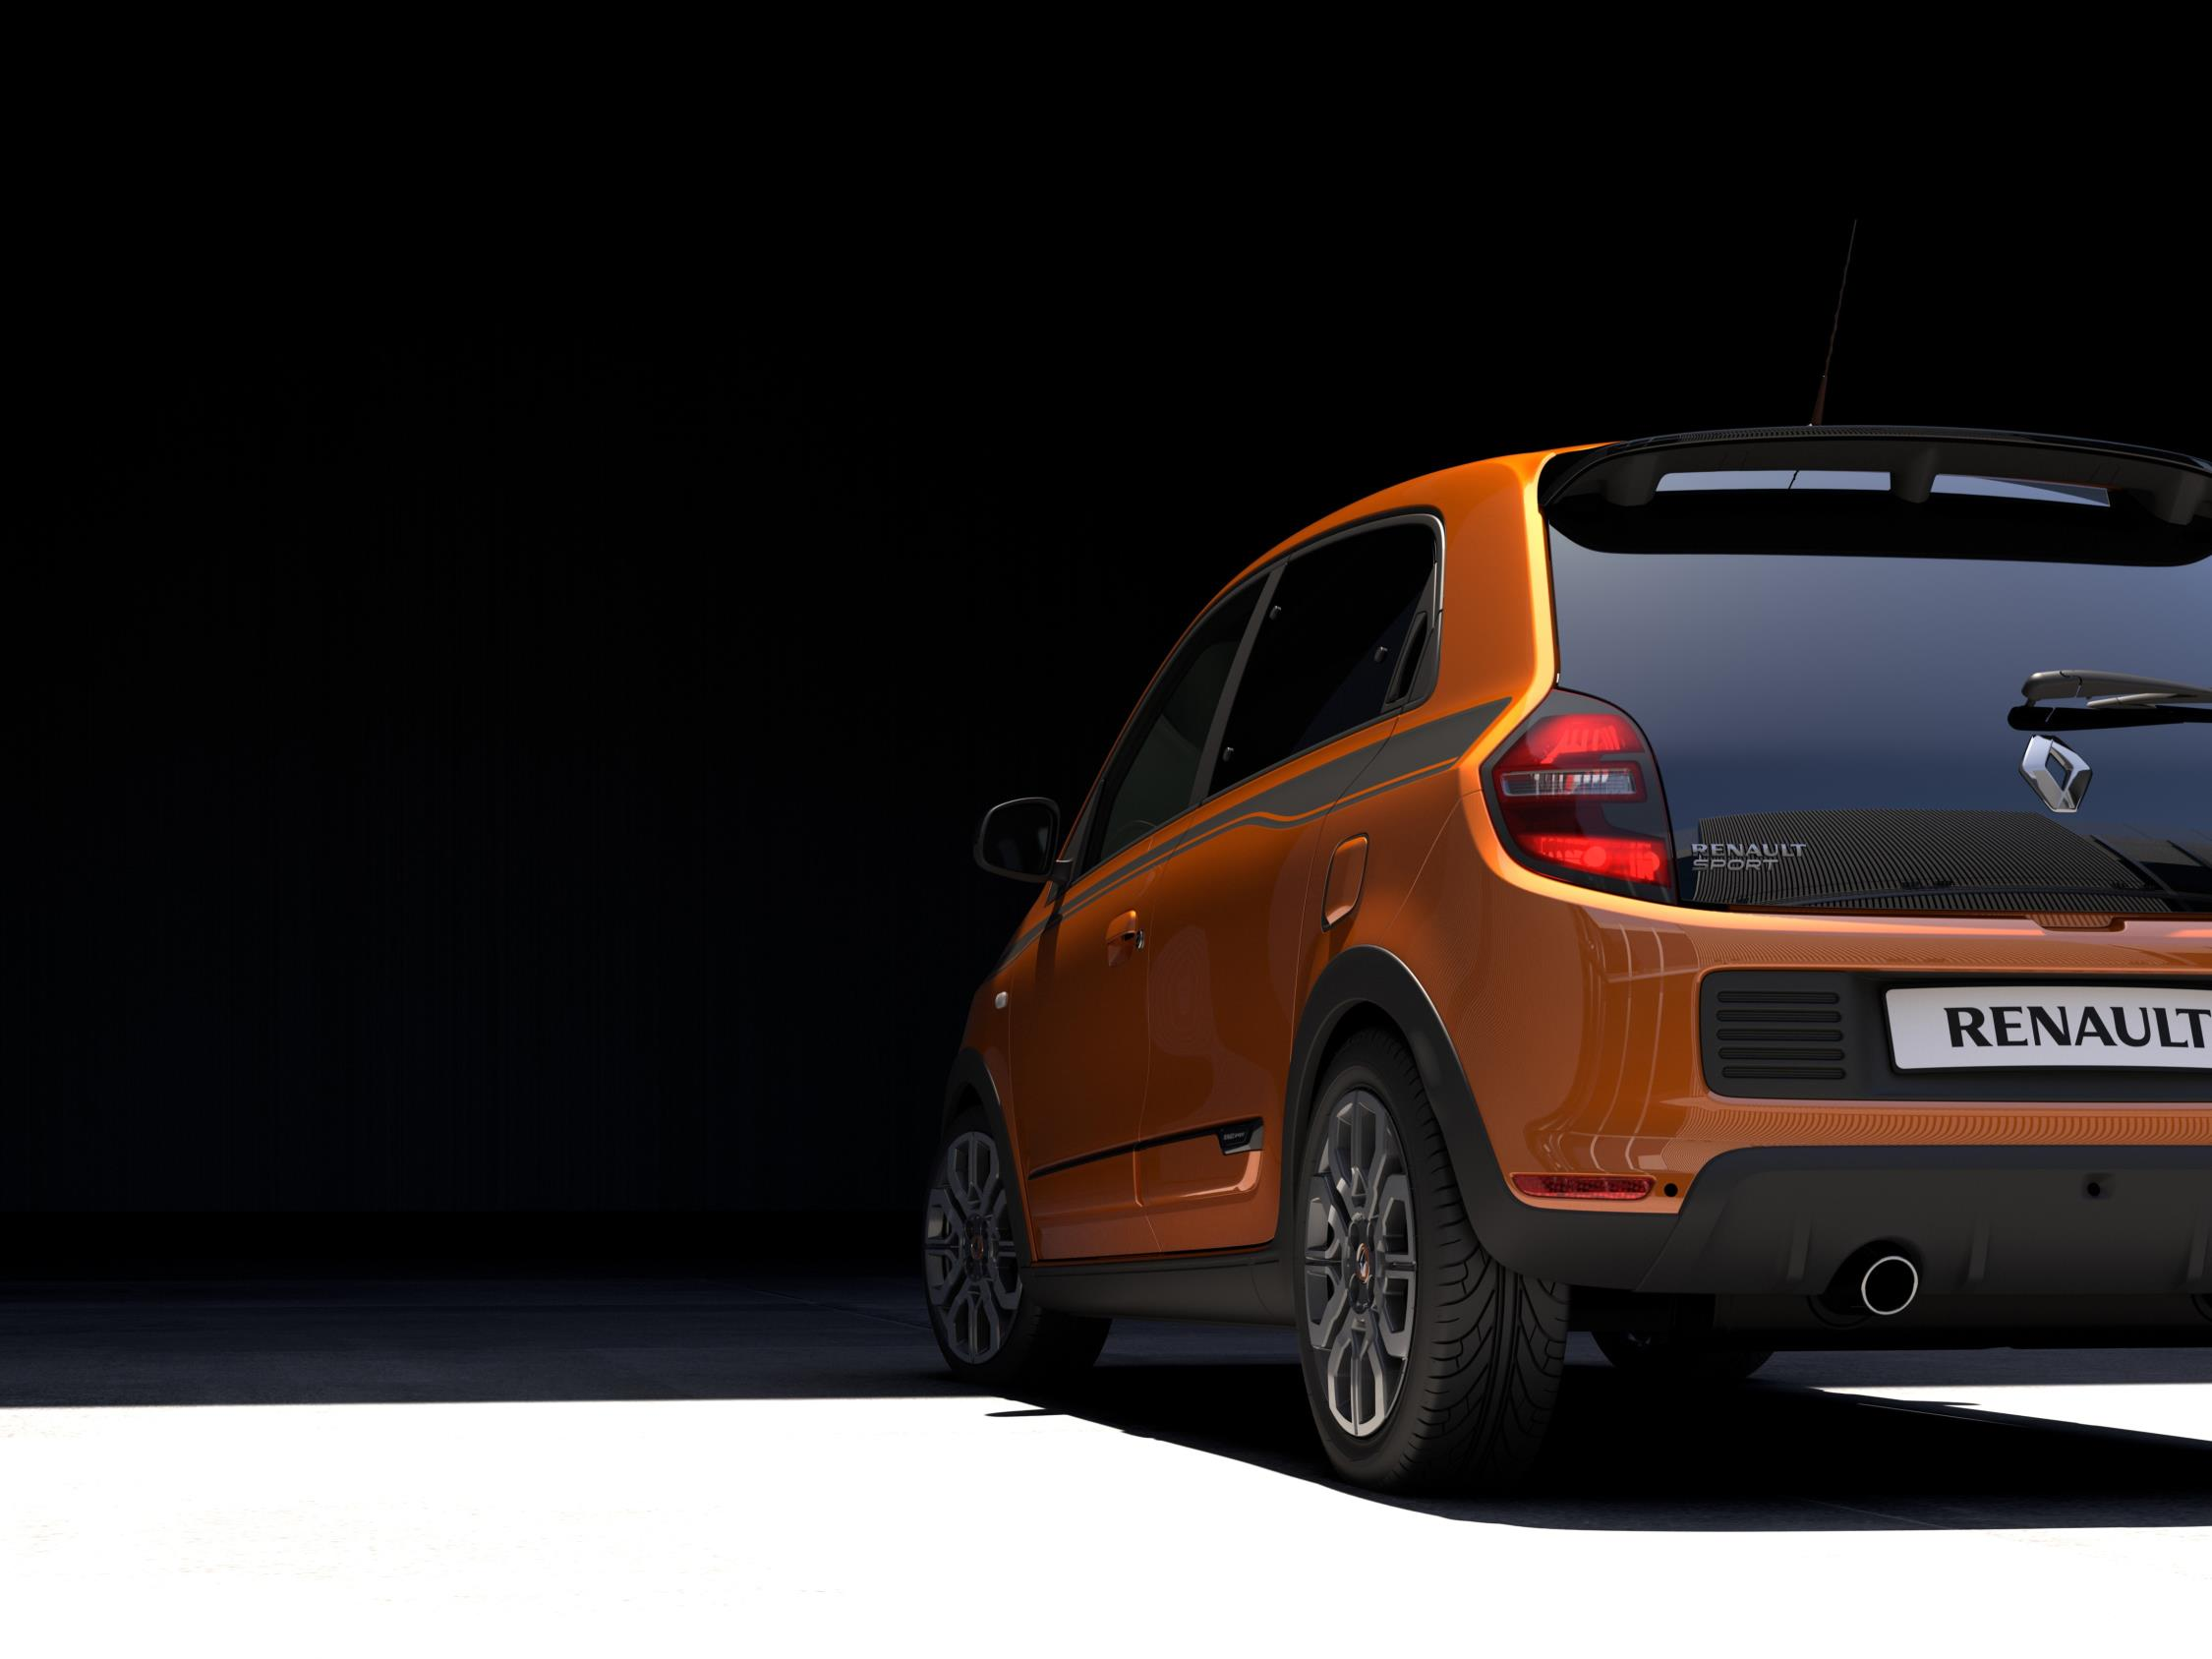 2016 renault twingo gt teased debut imminent autoevolution. Black Bedroom Furniture Sets. Home Design Ideas